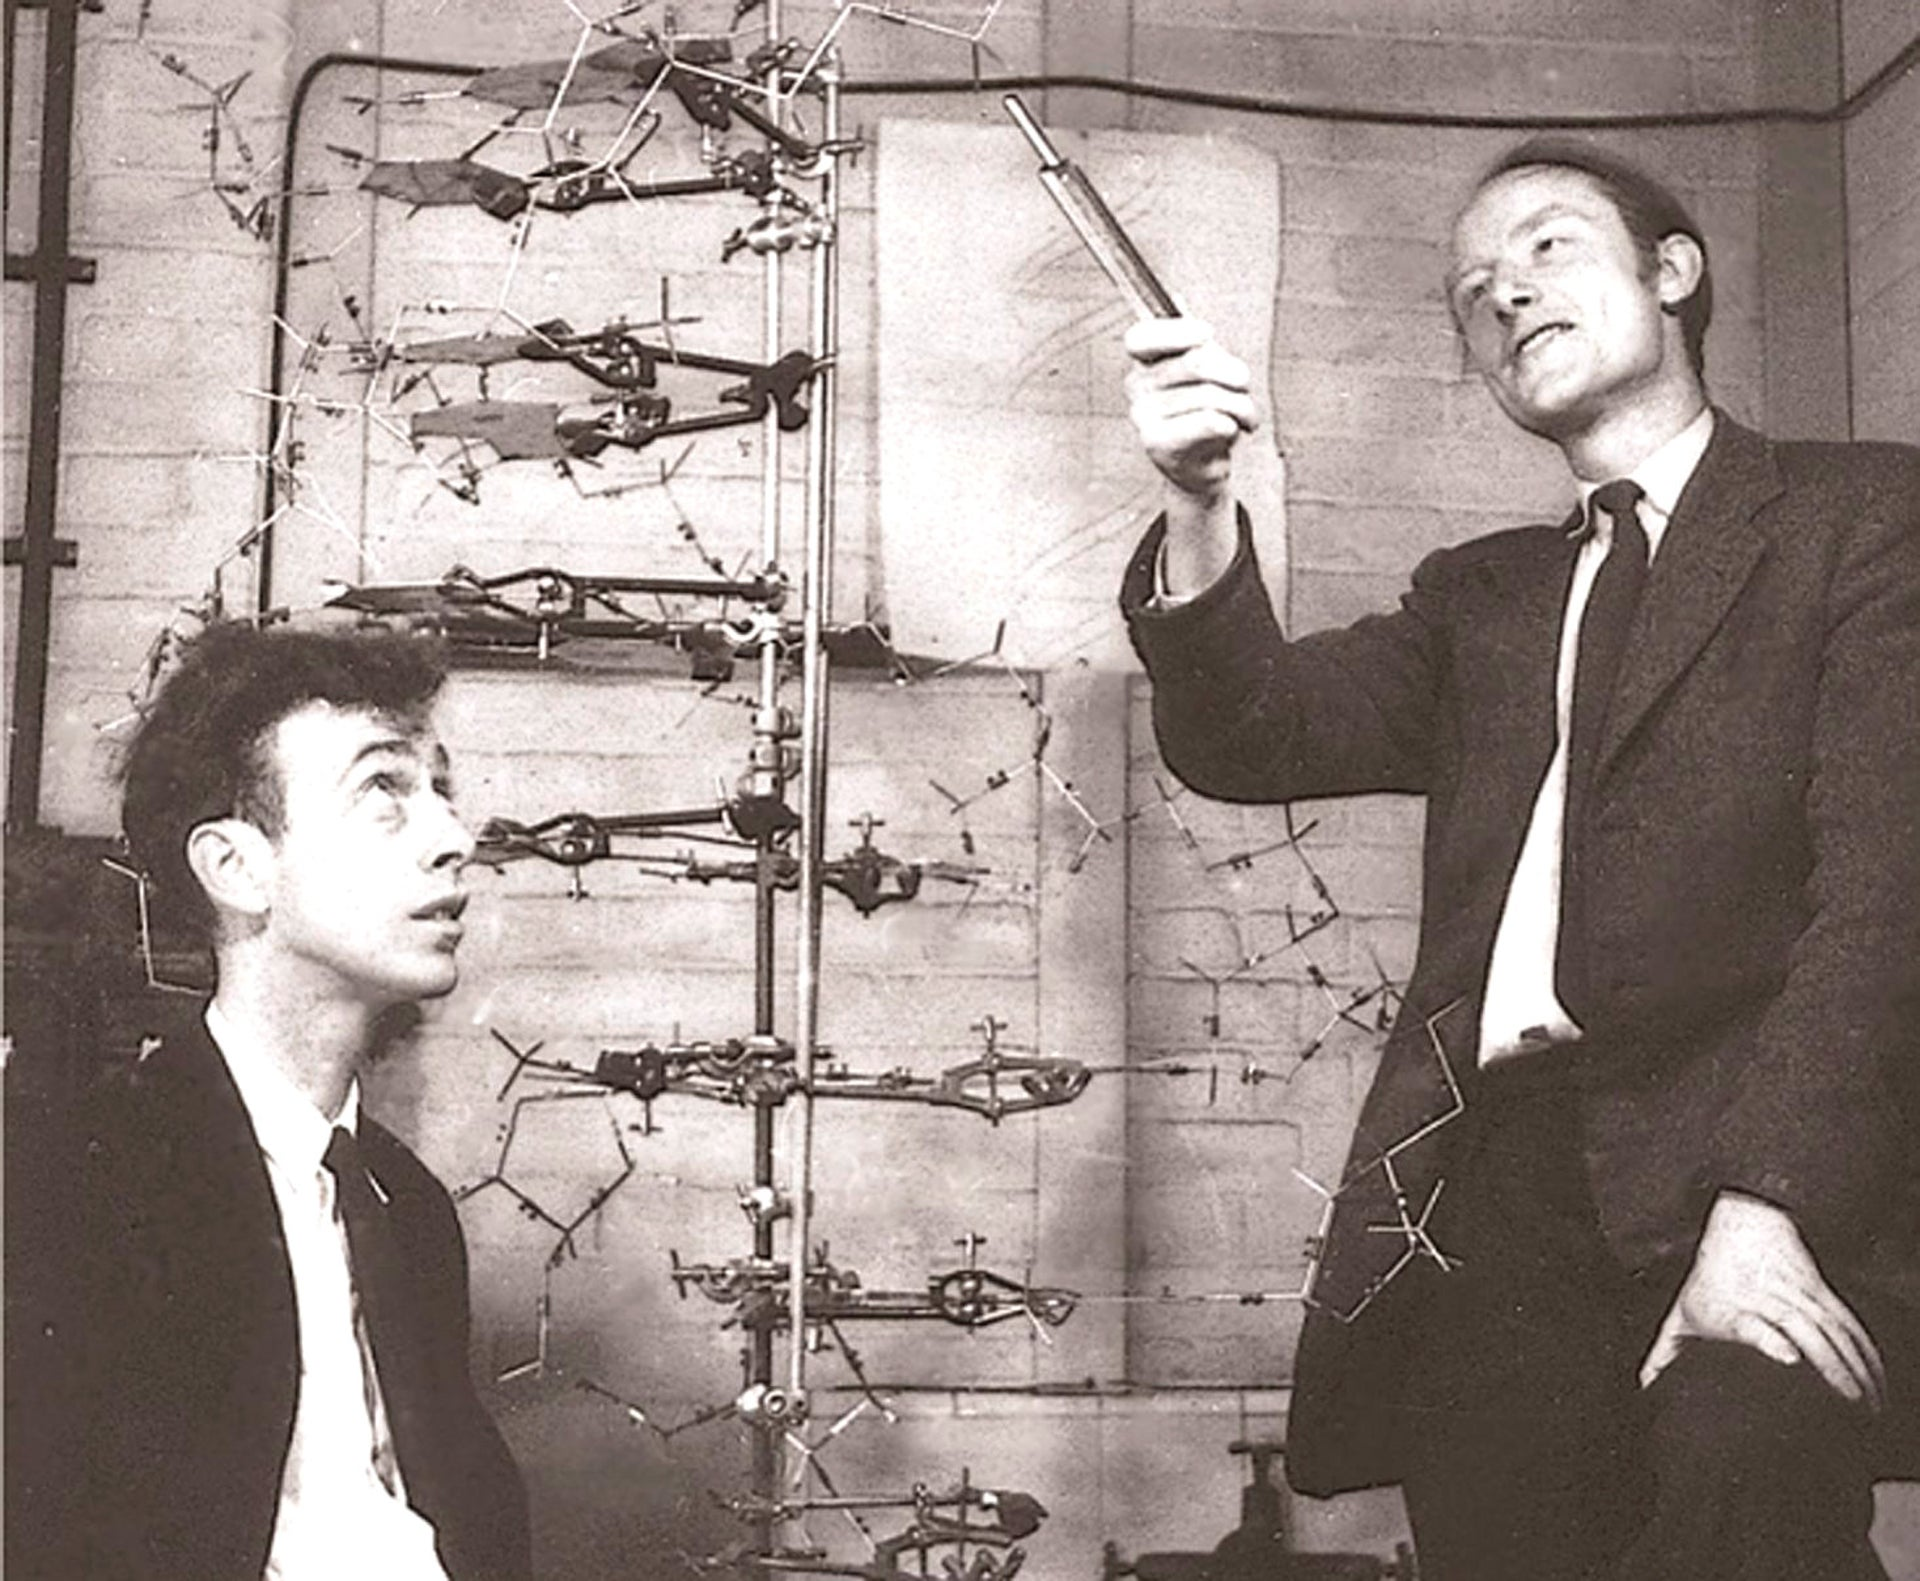 James D. Watson and Francis Crick, co-discoverers of the structure and function of DNA, seen here in a photo taken circa 1953.